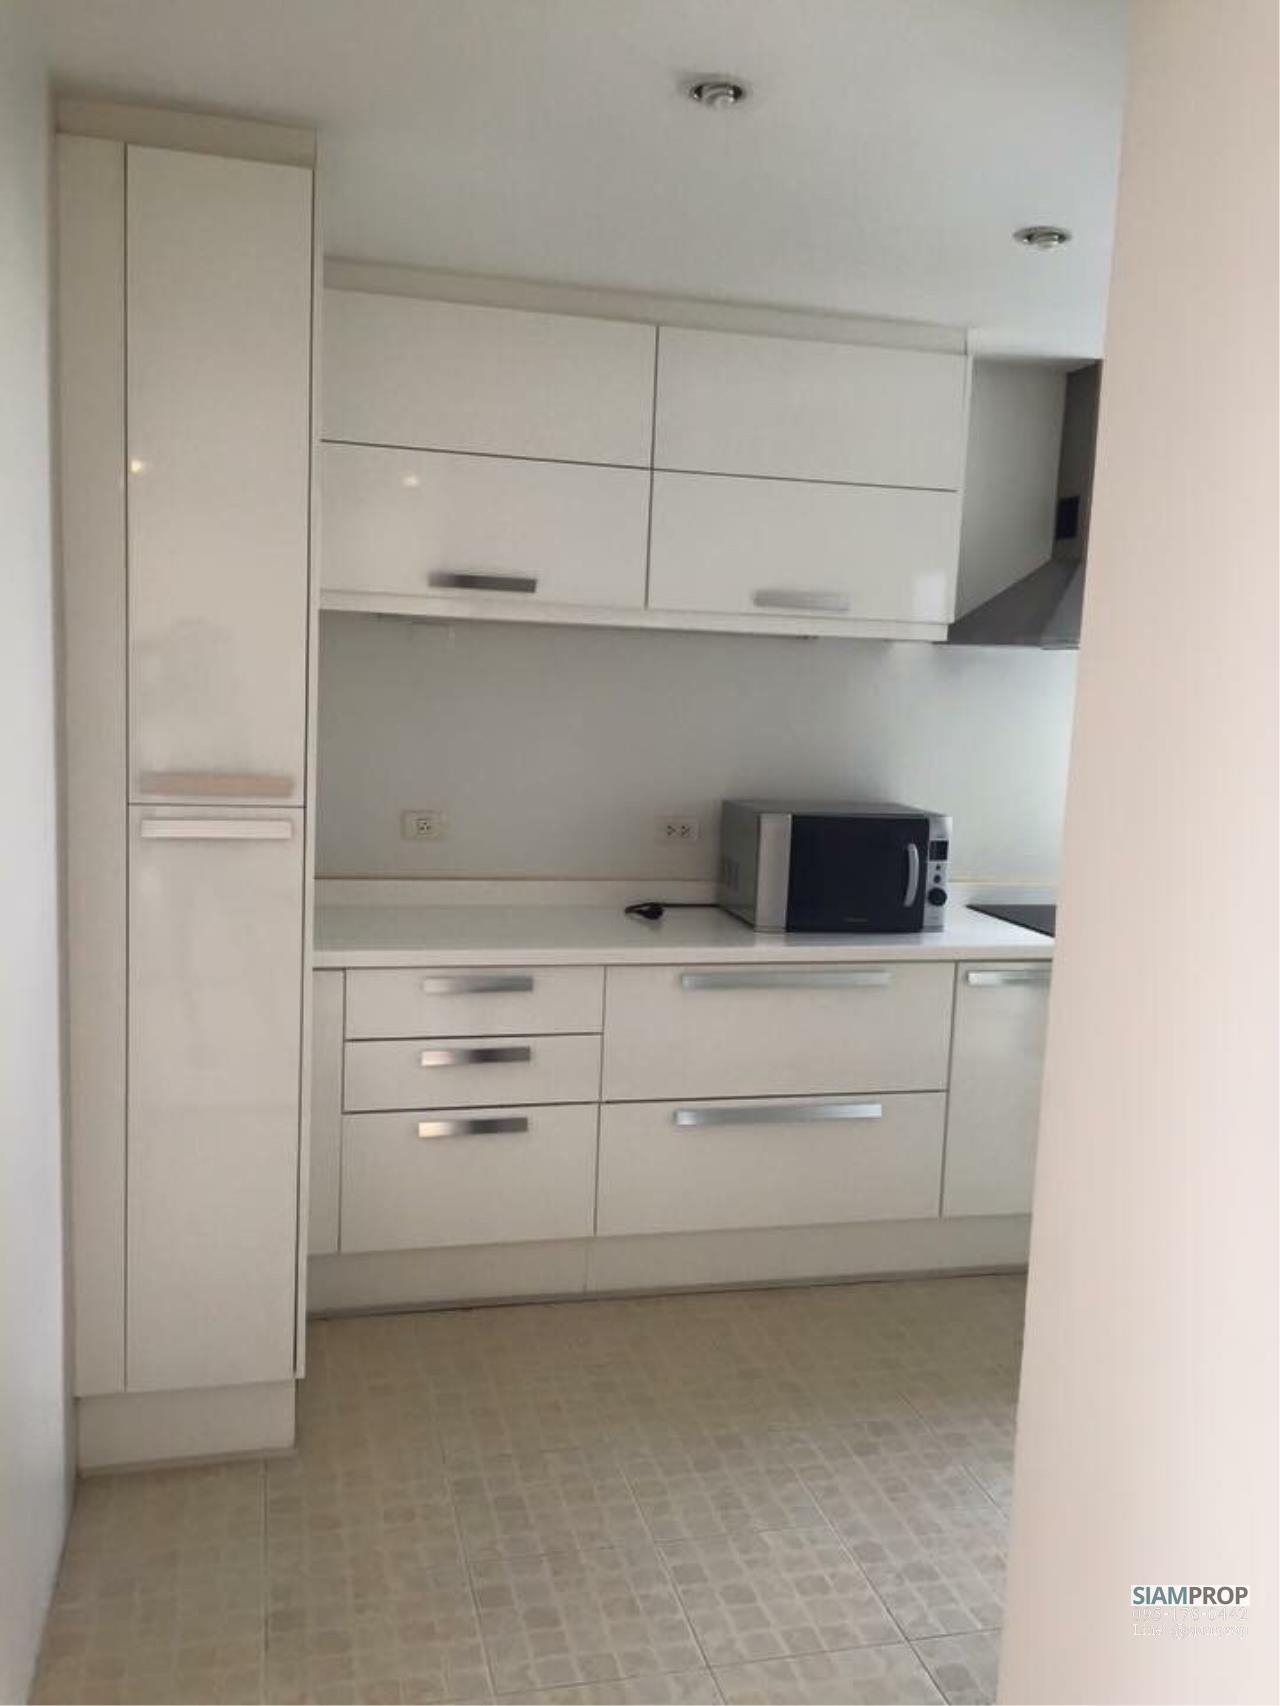 Siam Prop Agency's Avenue 61 Condo for Sale 3 Bedrooms 190 Sqm. Only 19.2MB 8